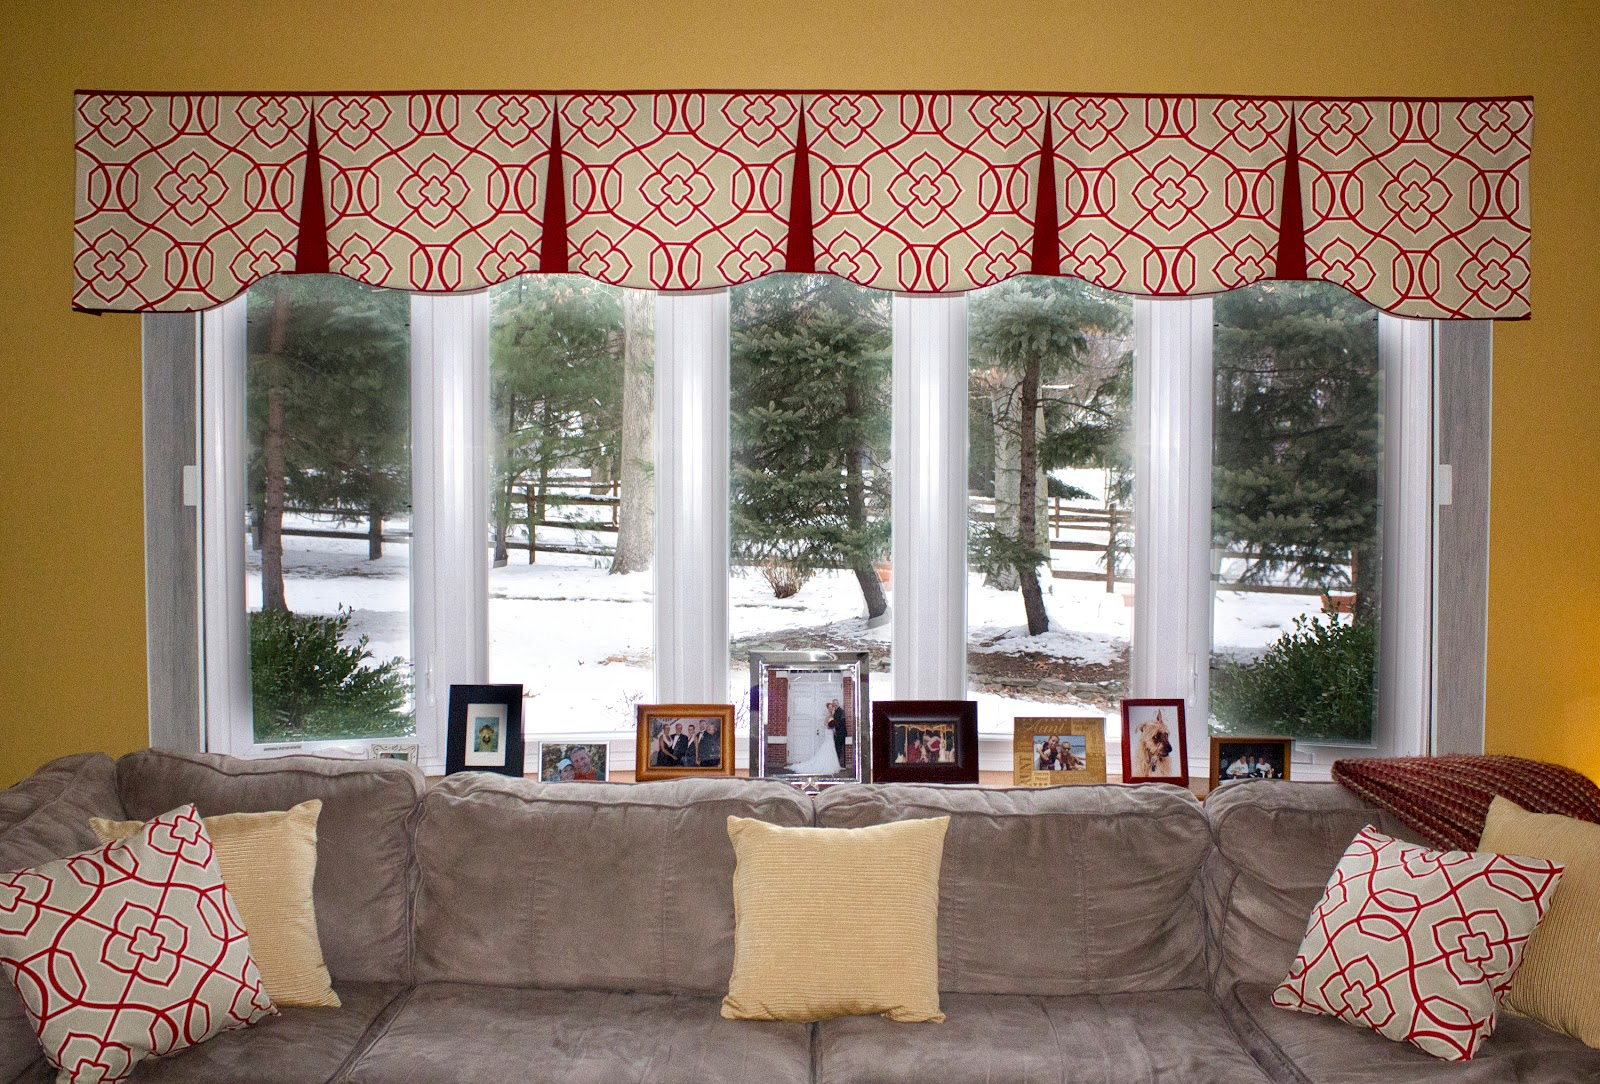 The Sewing Ninja: Before And After: Working With Wide Windows